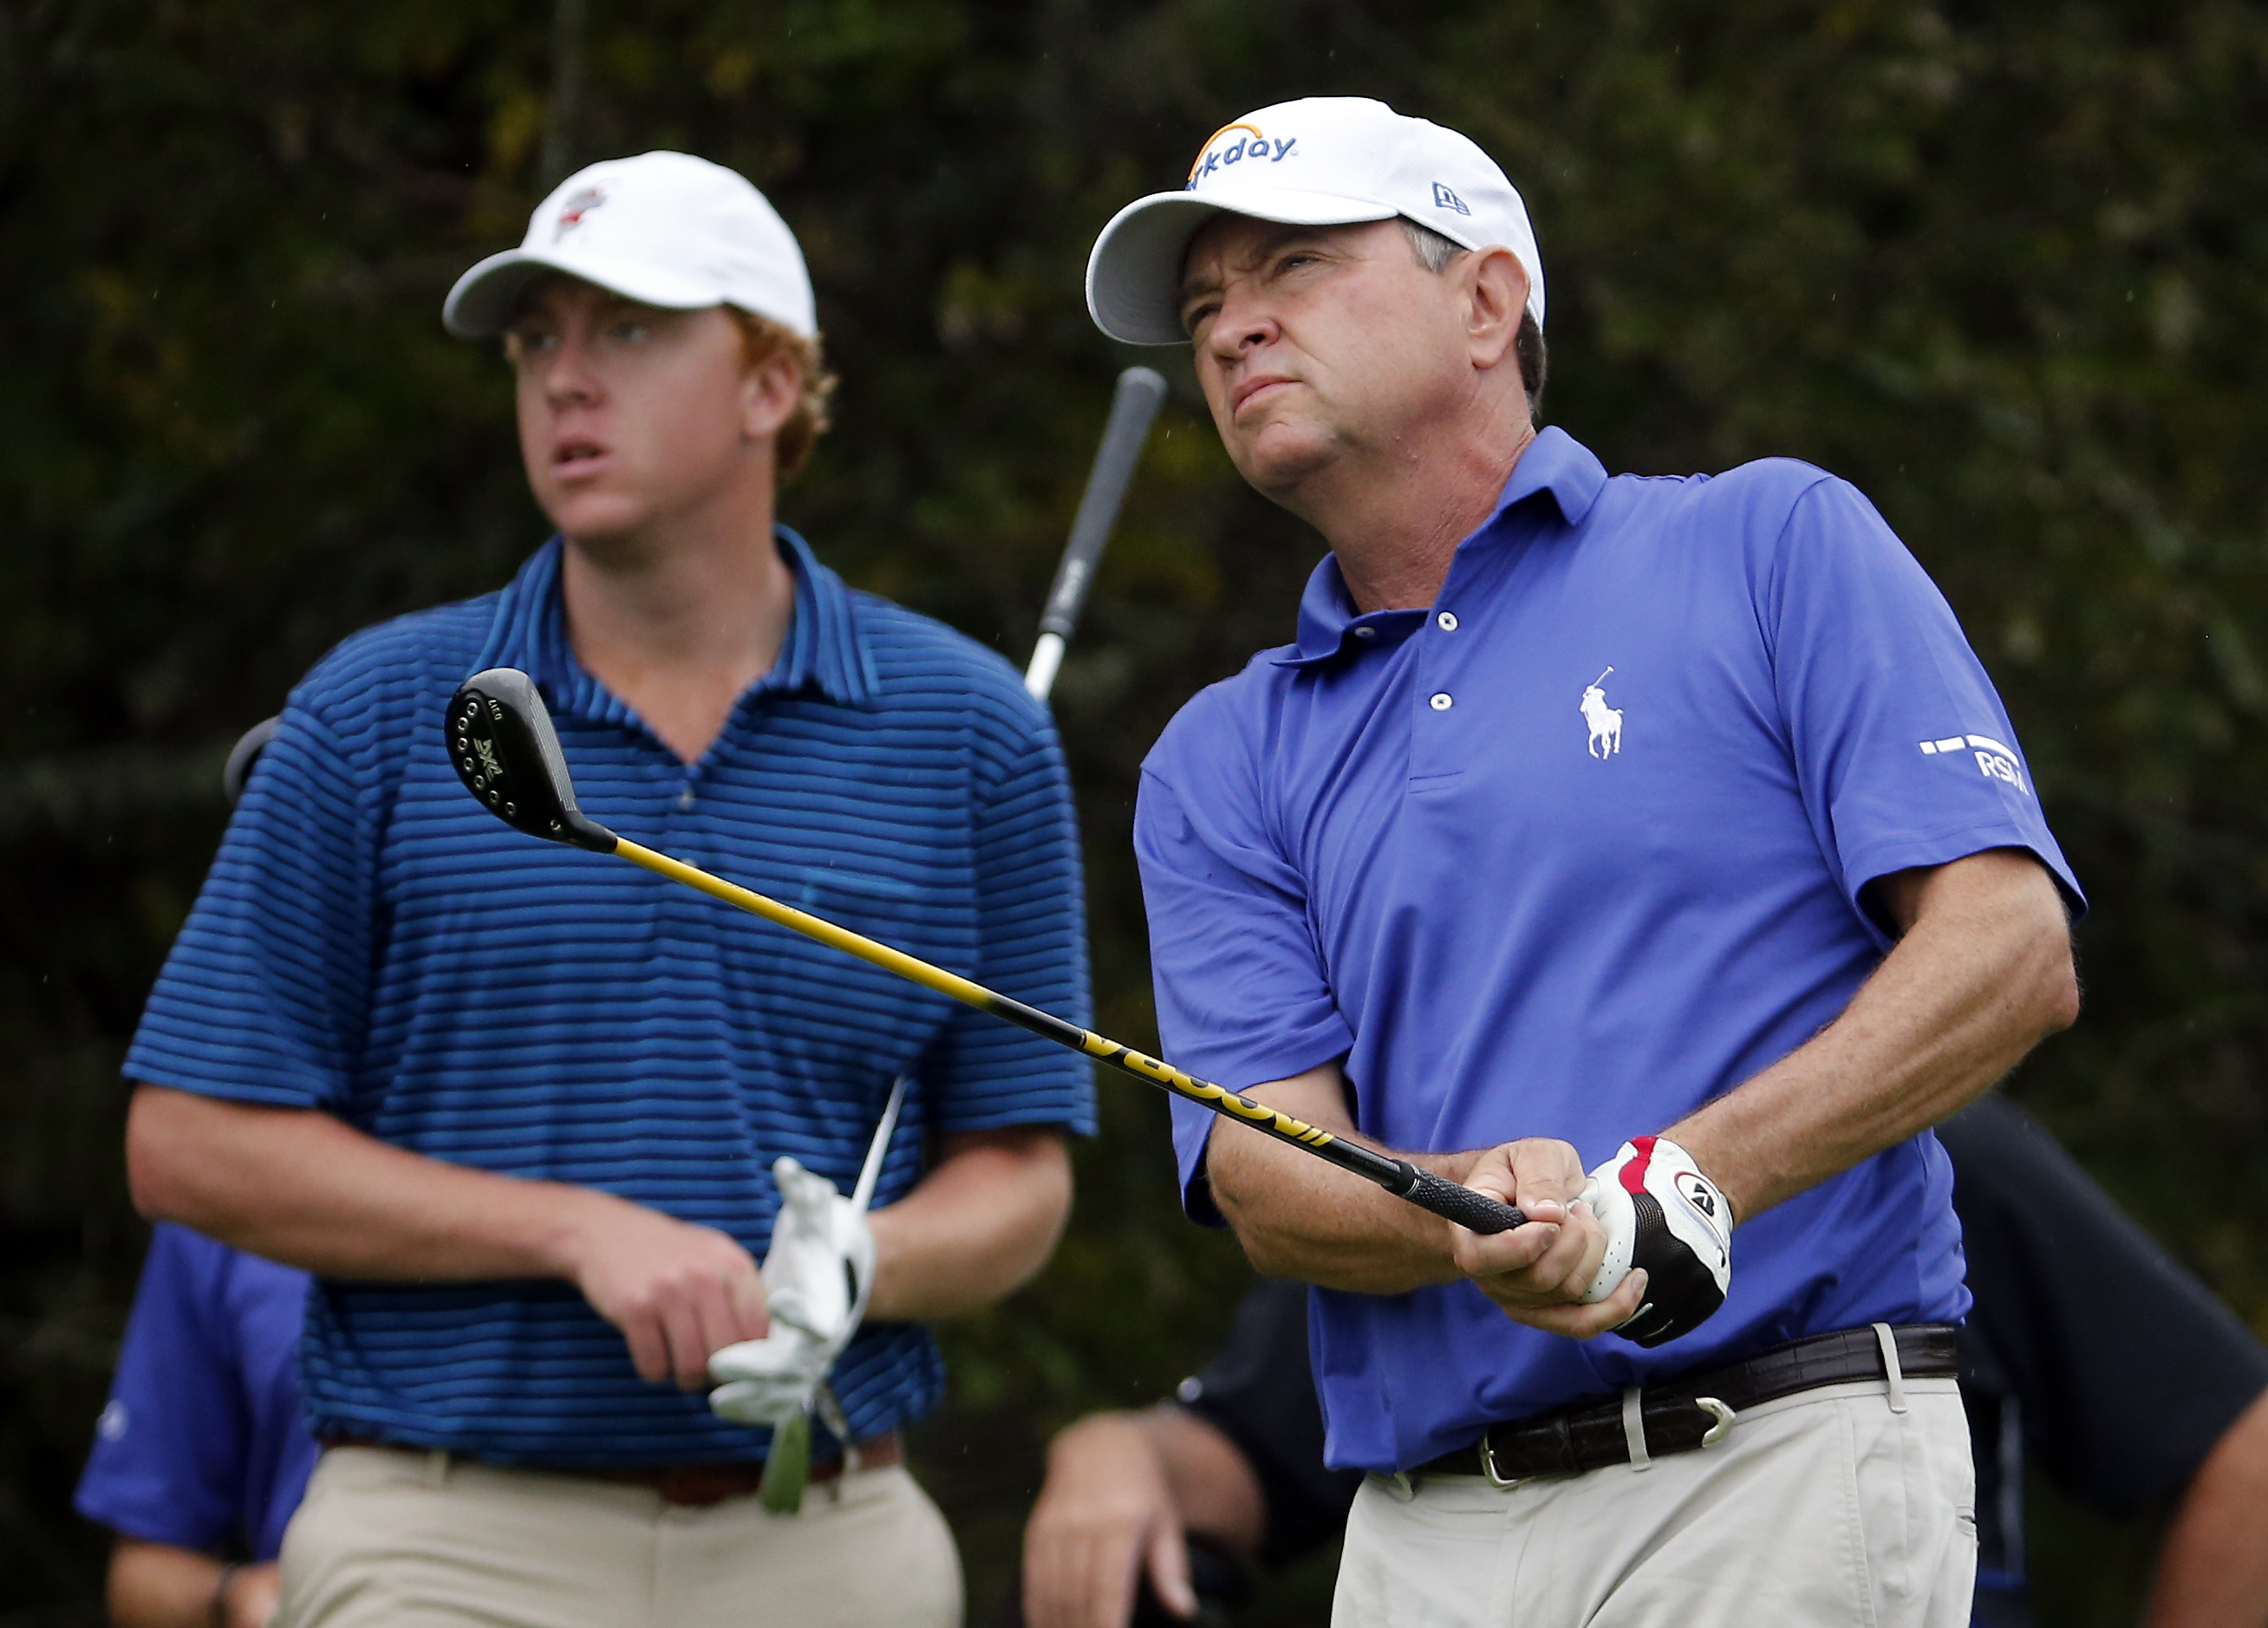 Davis Love III, right, watches his drive from the second tee, while his son Davis Love IV, left, looks on during the first round at the RSM Classic golf tournament, Thursday, Nov 19, 2015, in St. Simons Island, Ga. (AP Photo/Stephen B. Morton)